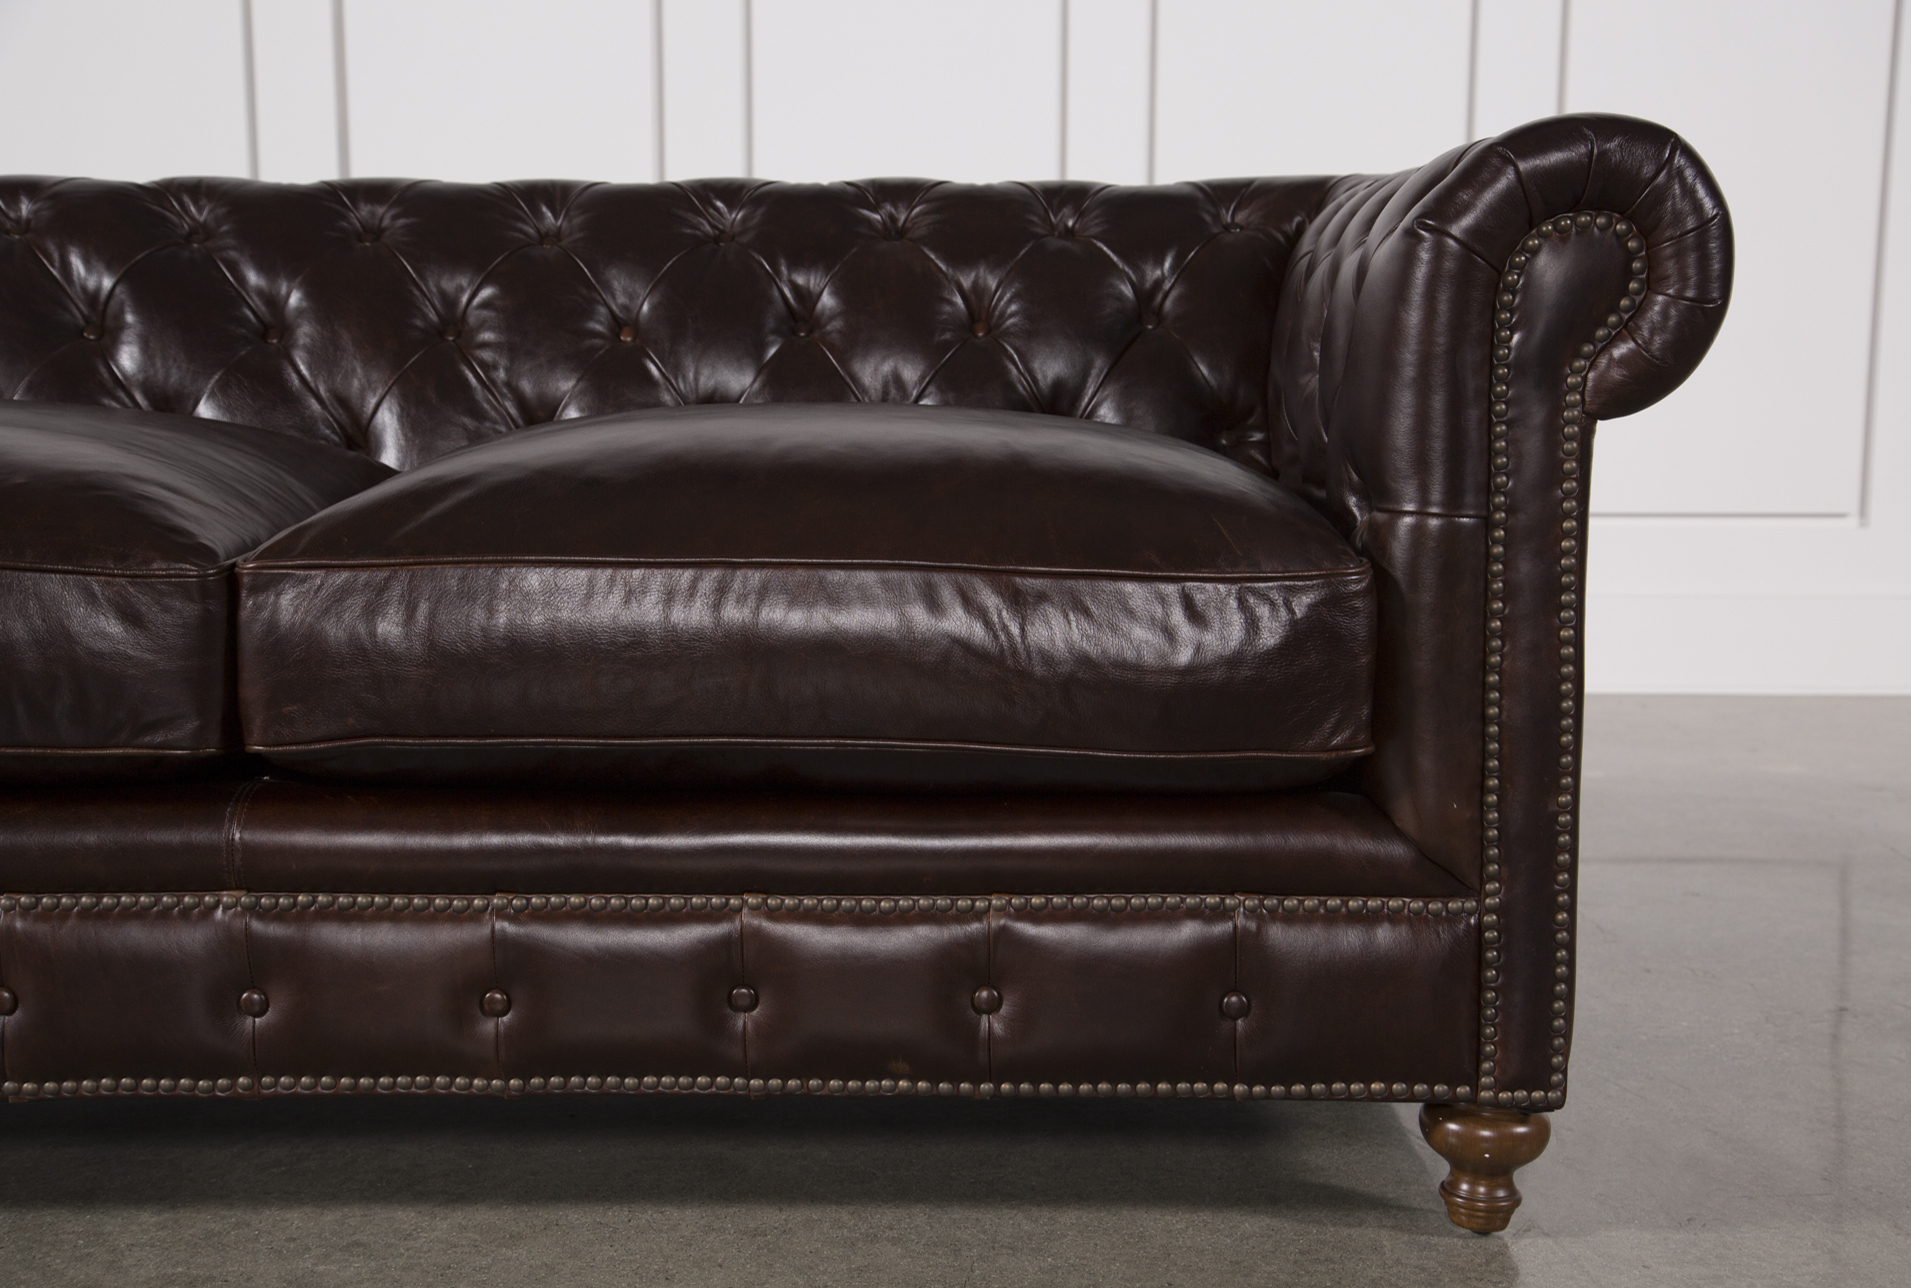 Mansfield 86 Inch Cocoa Leather Sofa In 2018 | Products | Pinterest Pertaining To Mansfield Cocoa Leather Sofa Chairs (Image 12 of 25)